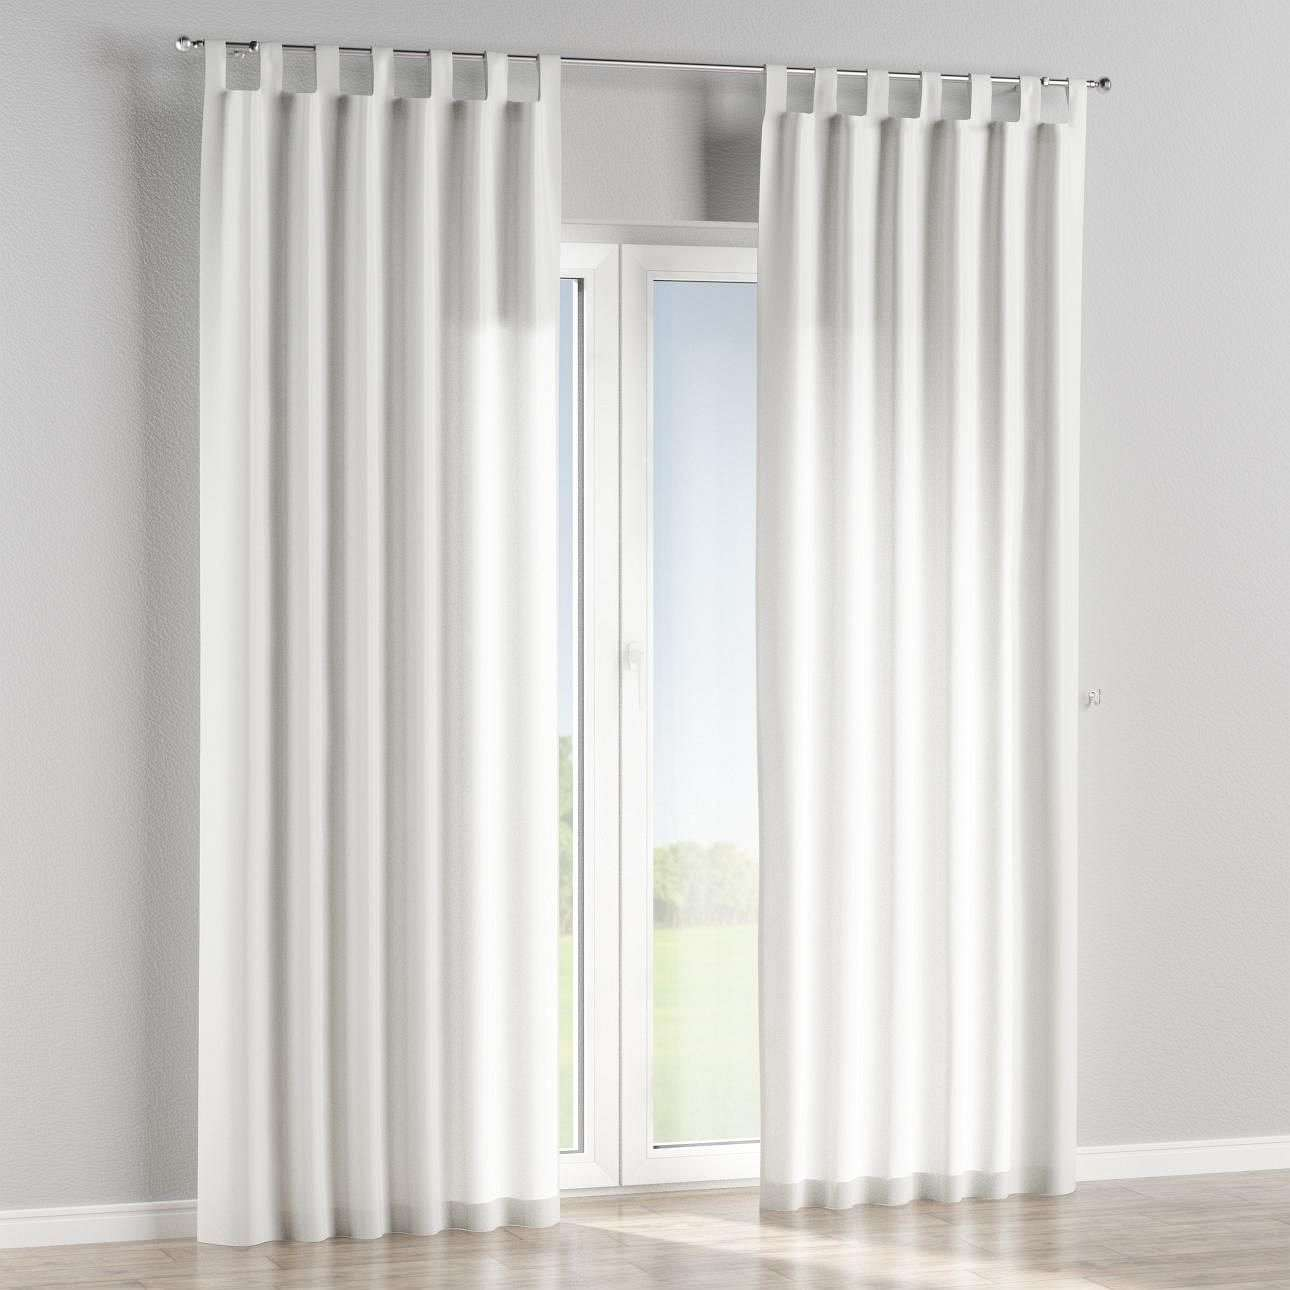 Tab top lined curtains in collection Venice, fabric: 140-53